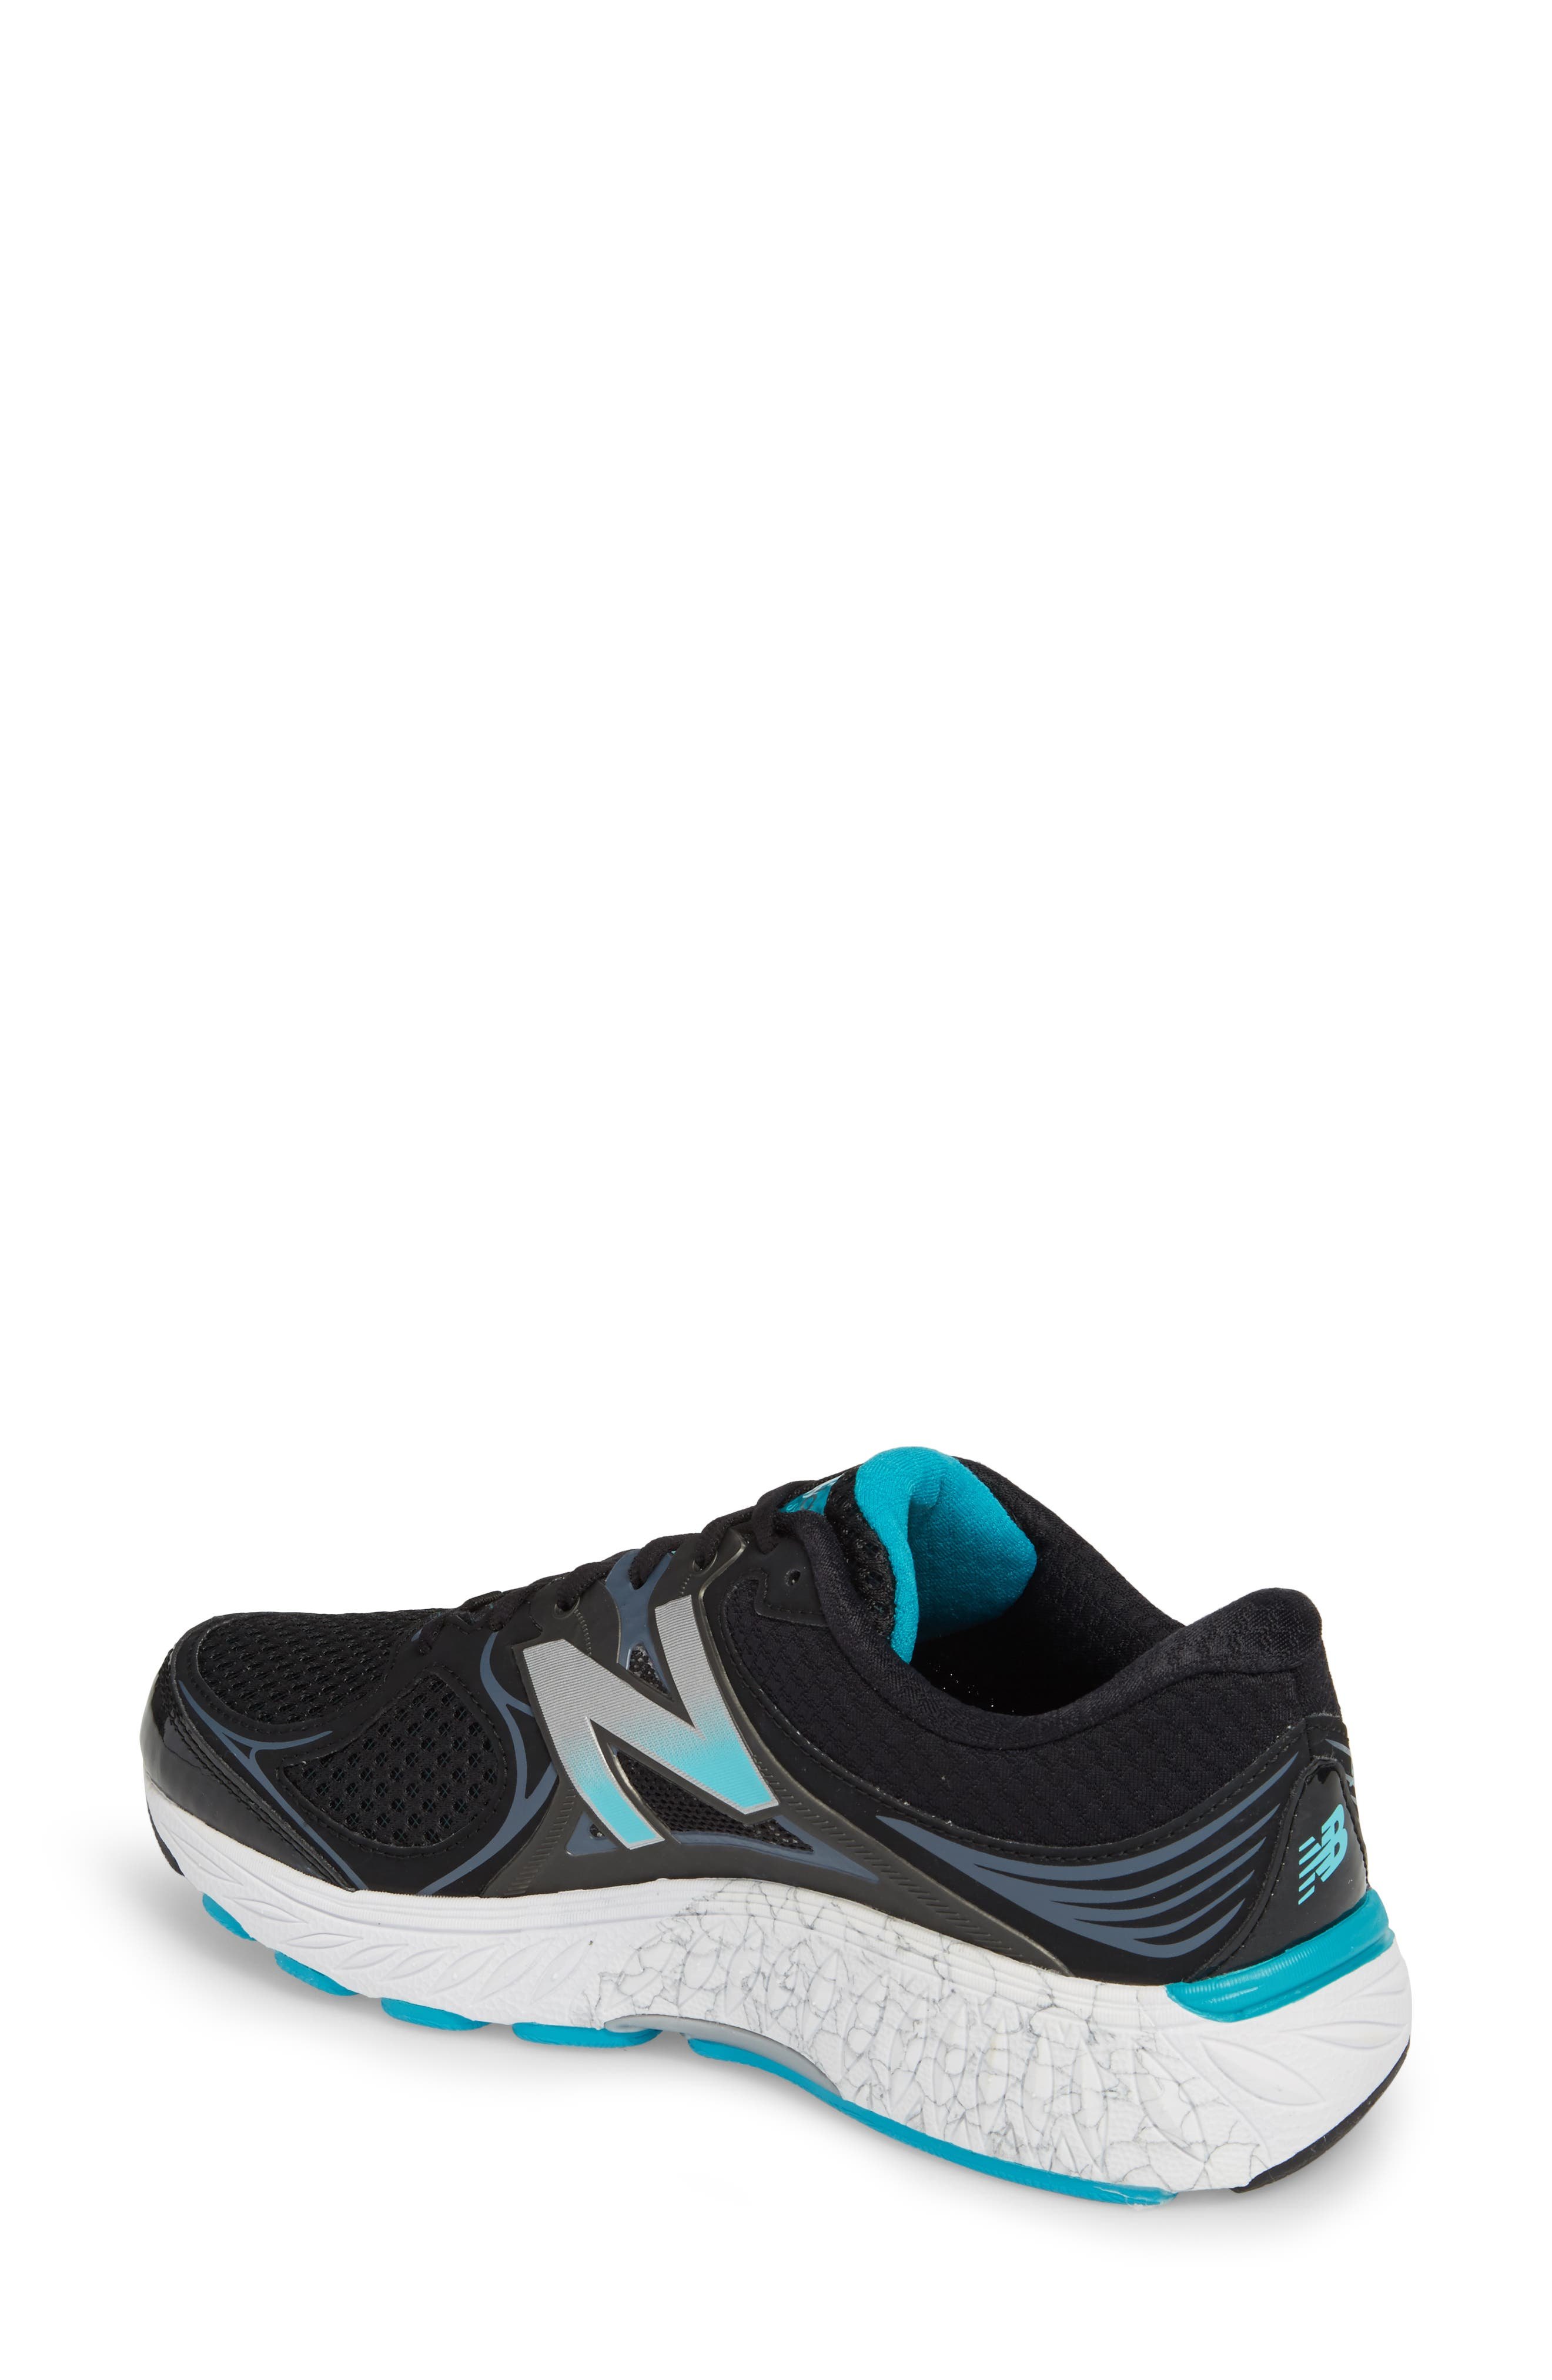 Alternate Image 2  - New Balance 940v3 Running Shoe (Women)